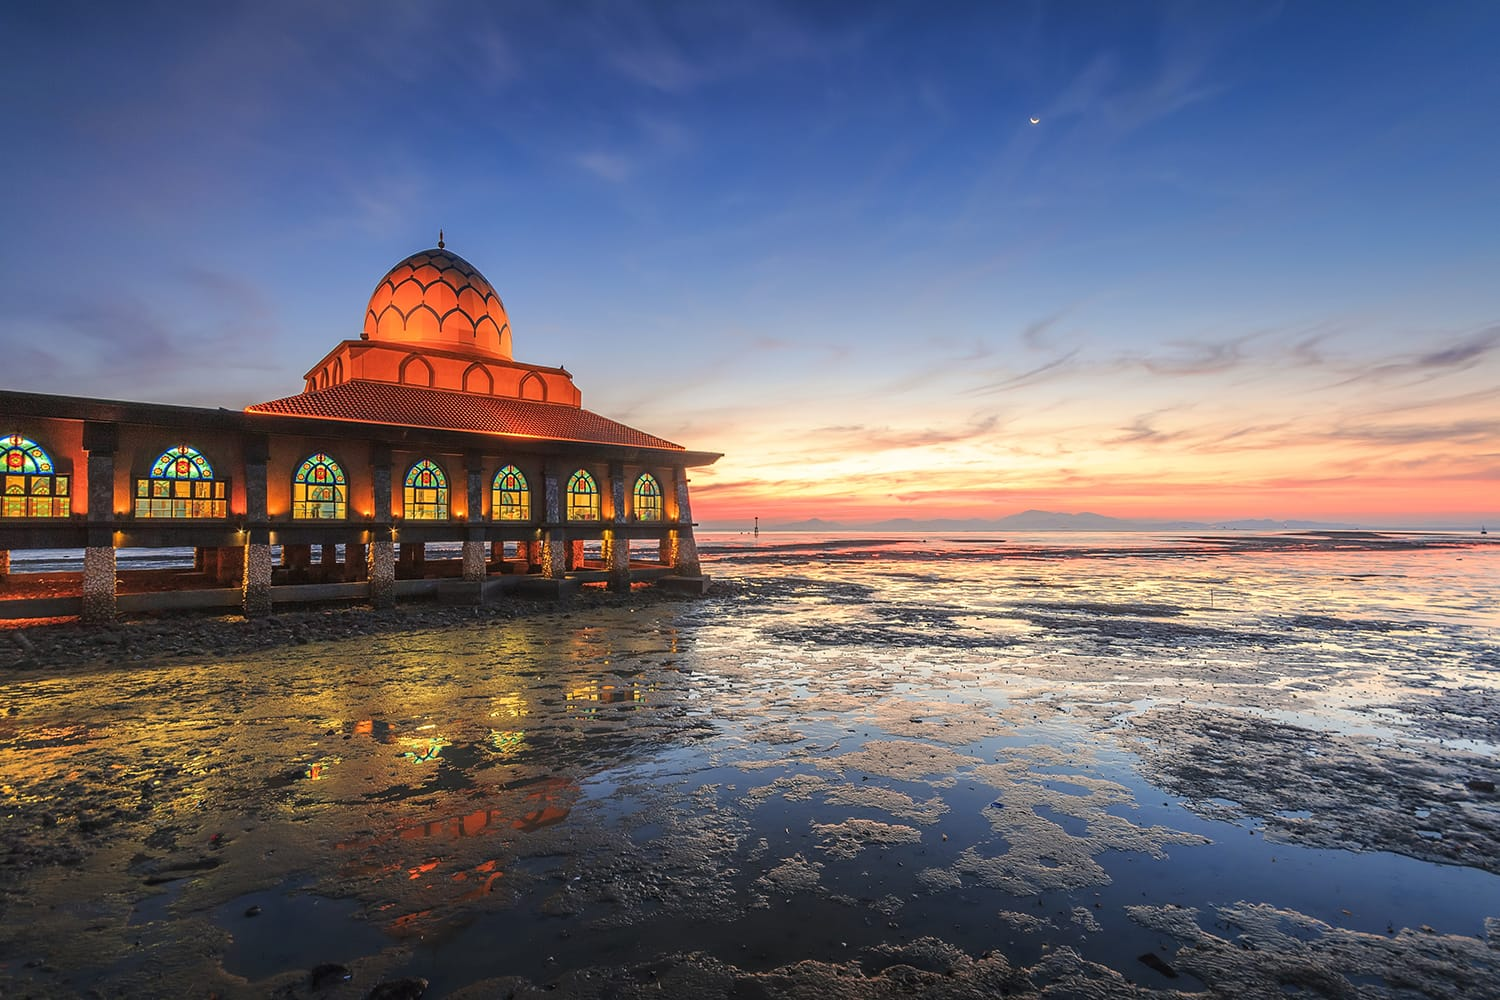 Al-Hussain Mosque at the sunset in Kuala Perlis, Perlis, Malaysia